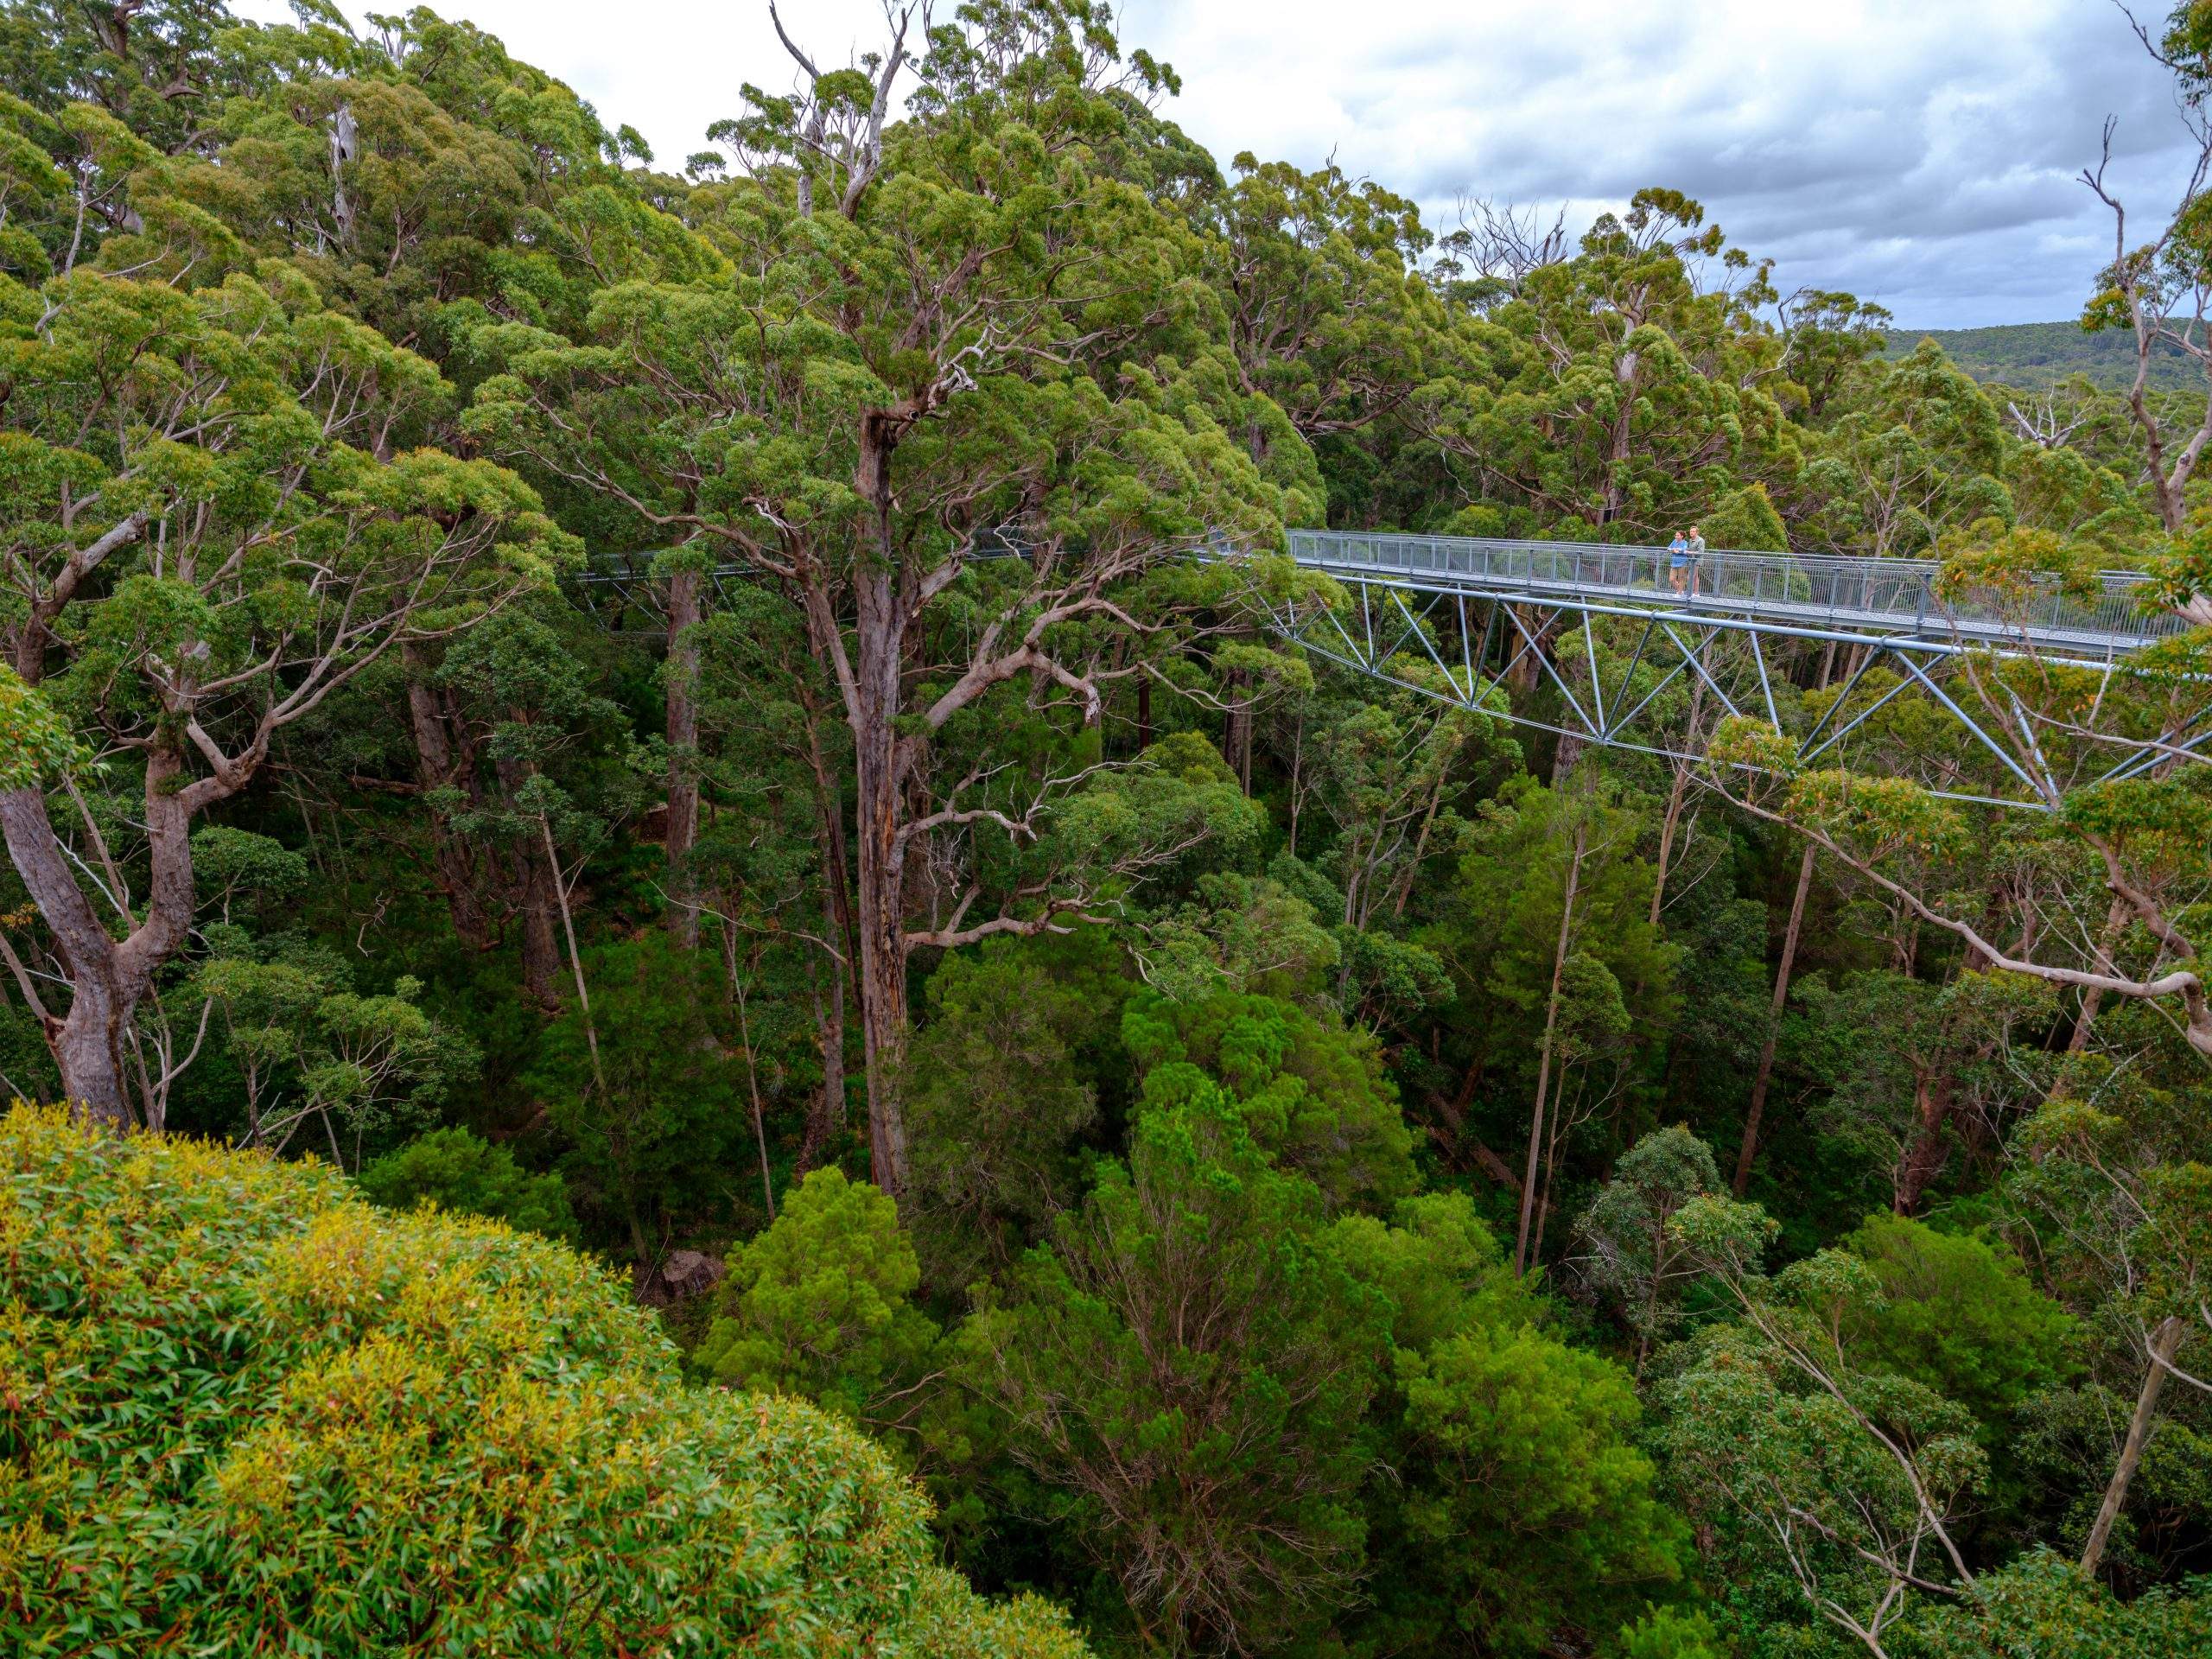 Albany & Valley of the Giants Tree Top Walk | Valley of the Giants, Tree Top Walk